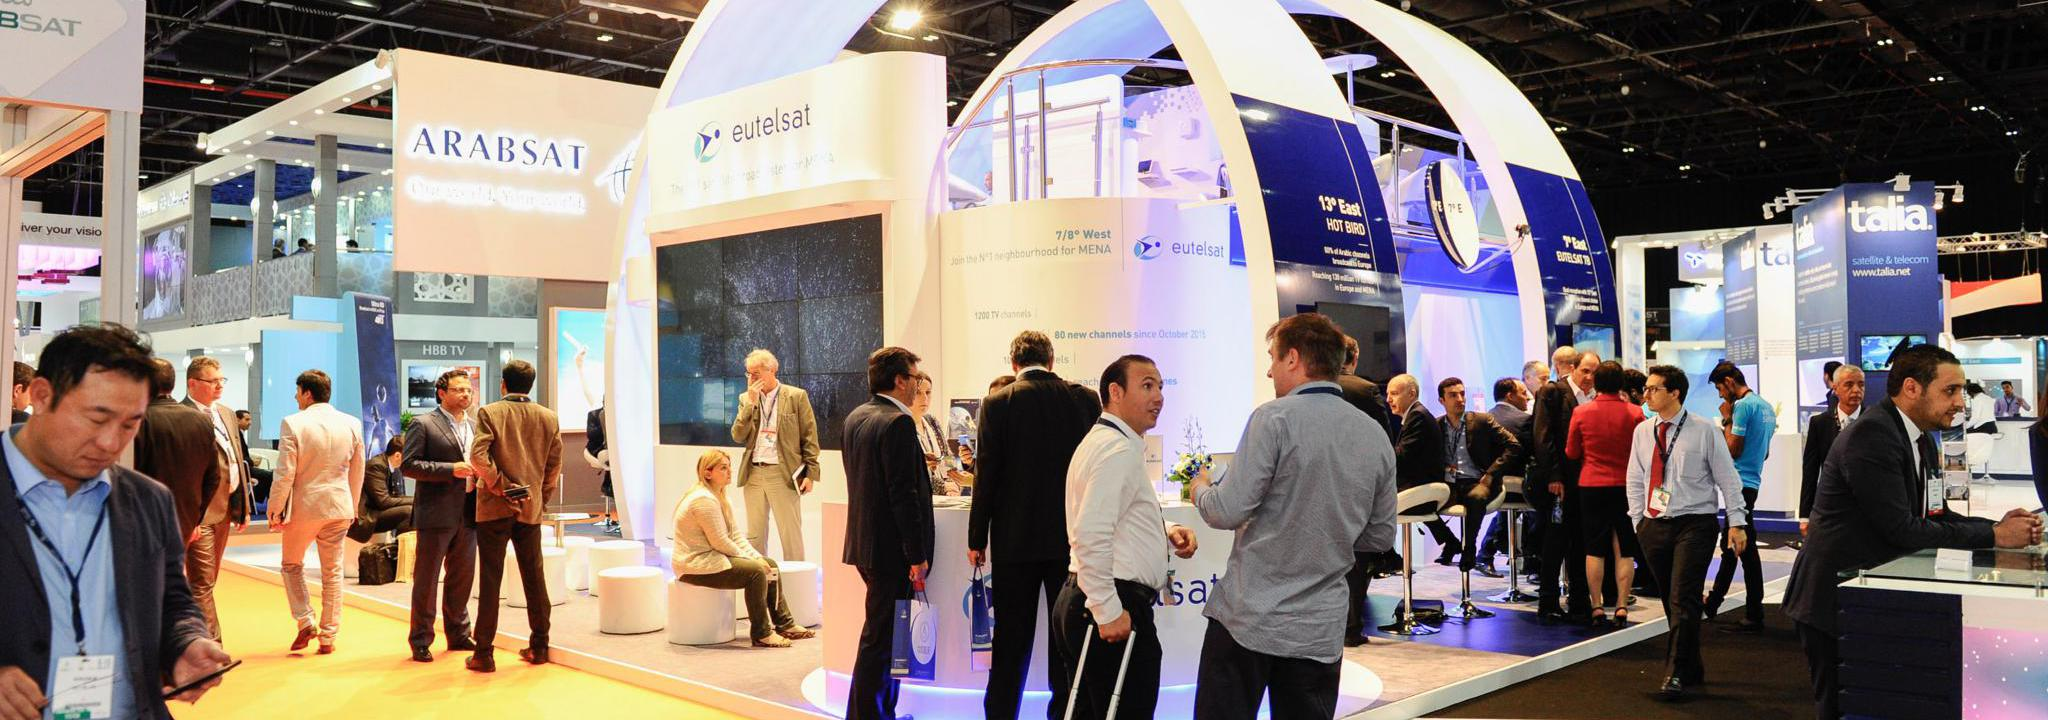 Cabsat Dubai Broadcasting Exhibition